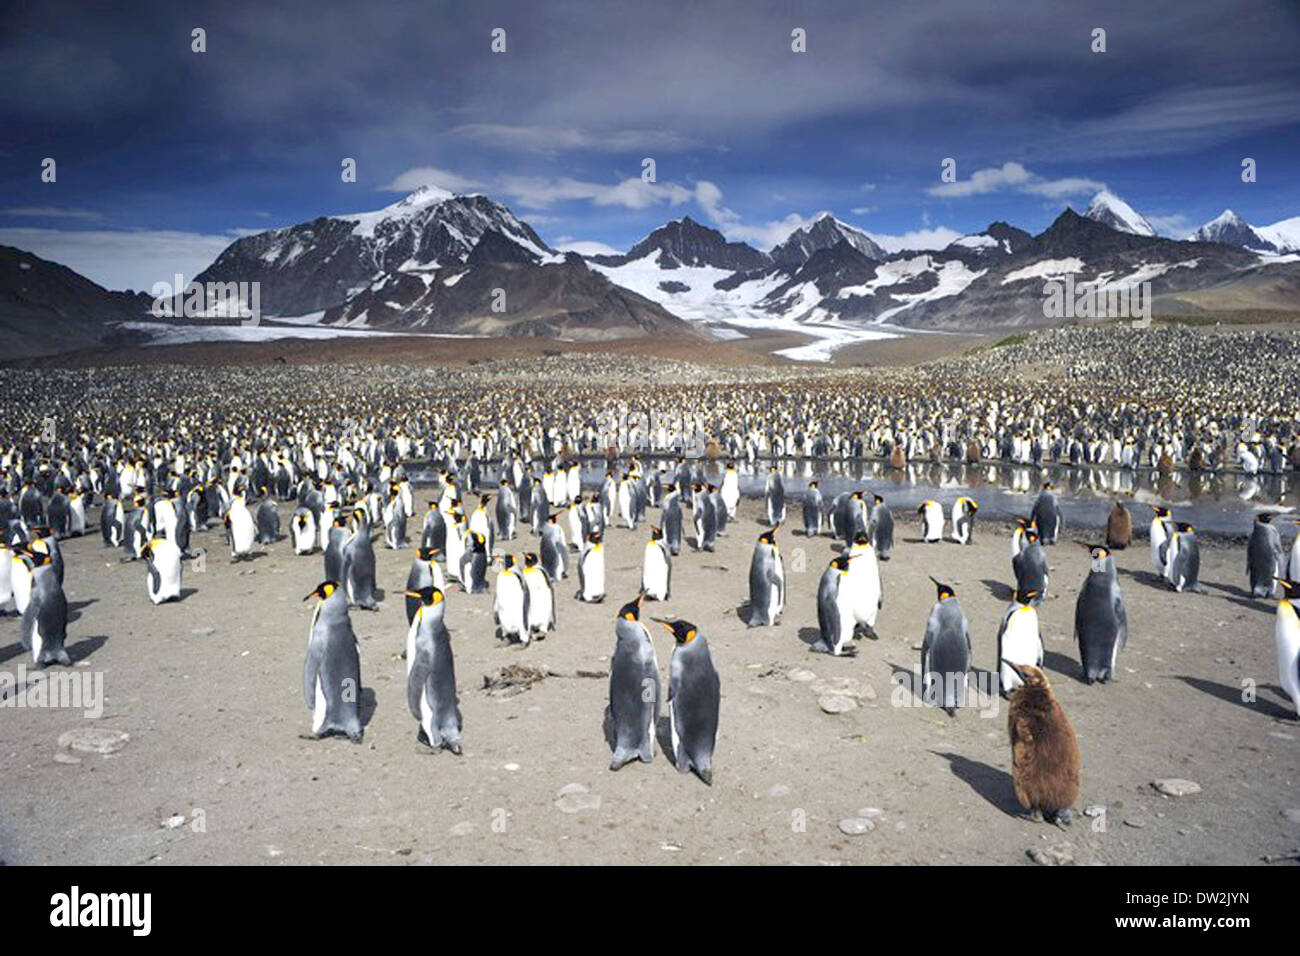 ADVENTURES OF THE PENGUIN KING  2013 Cinedigm film - Stock Image